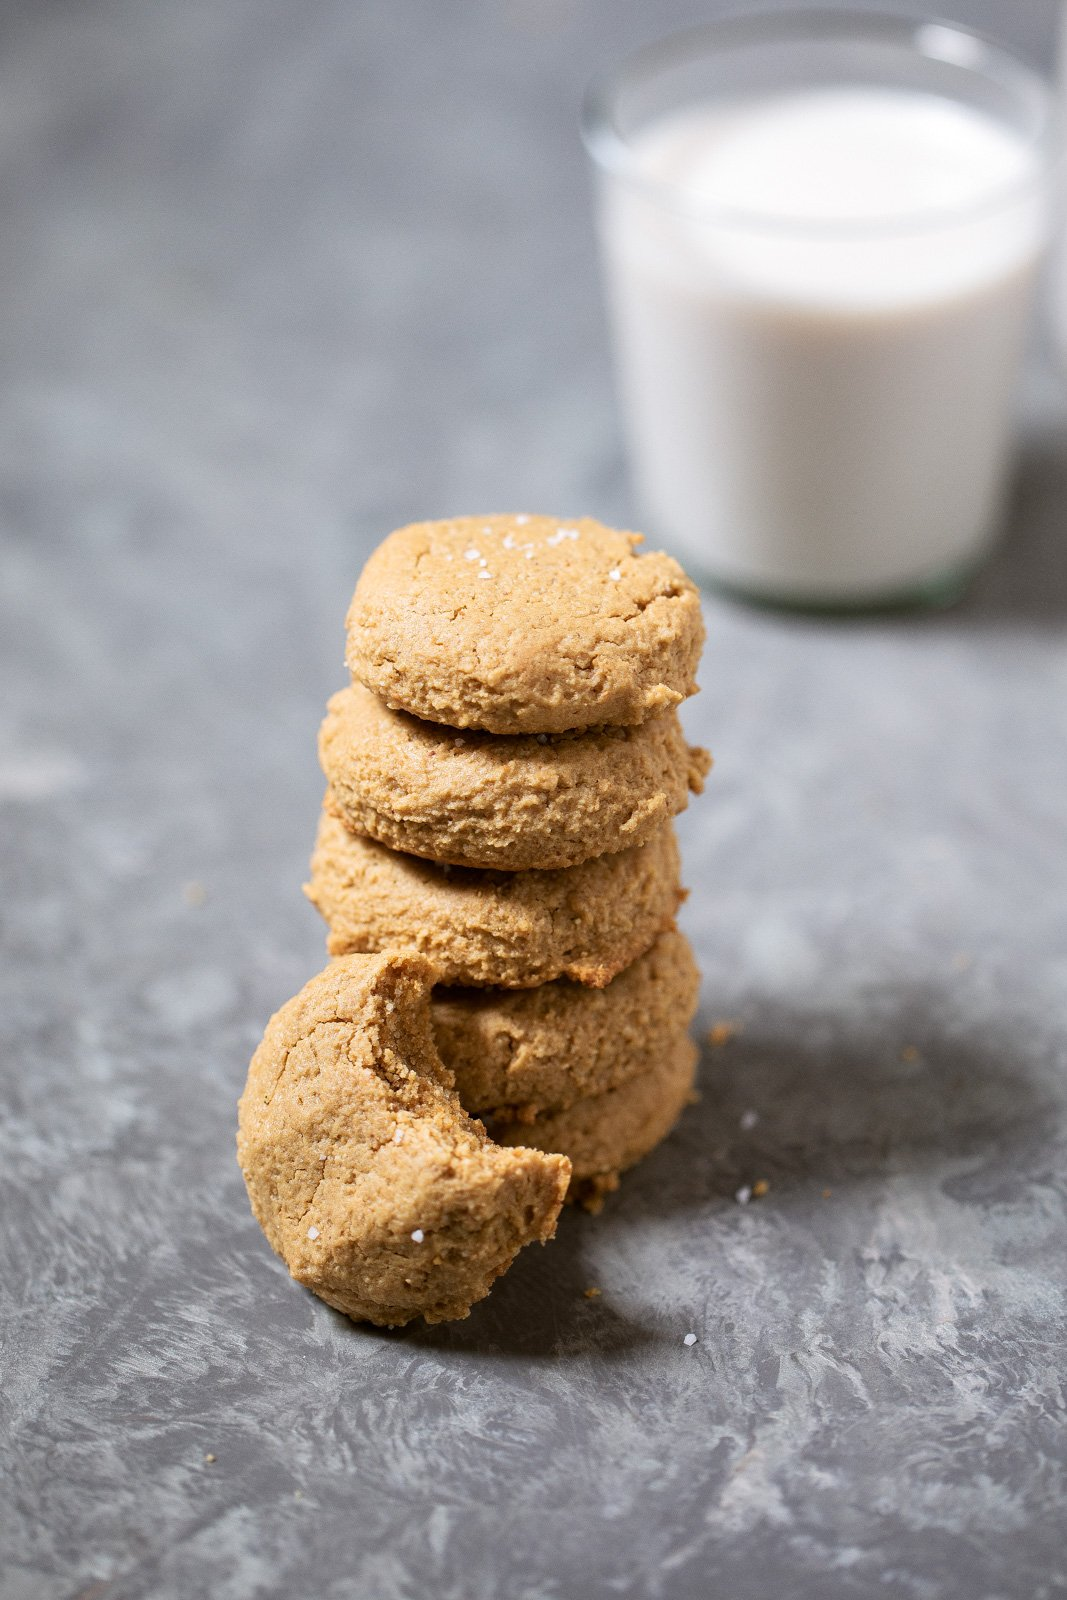 Easy, one bowl maple peanut butter cookies made with only 5 simple ingredients. Grain free, gluten free and dairy free. Only 20 minutes from start to finish.